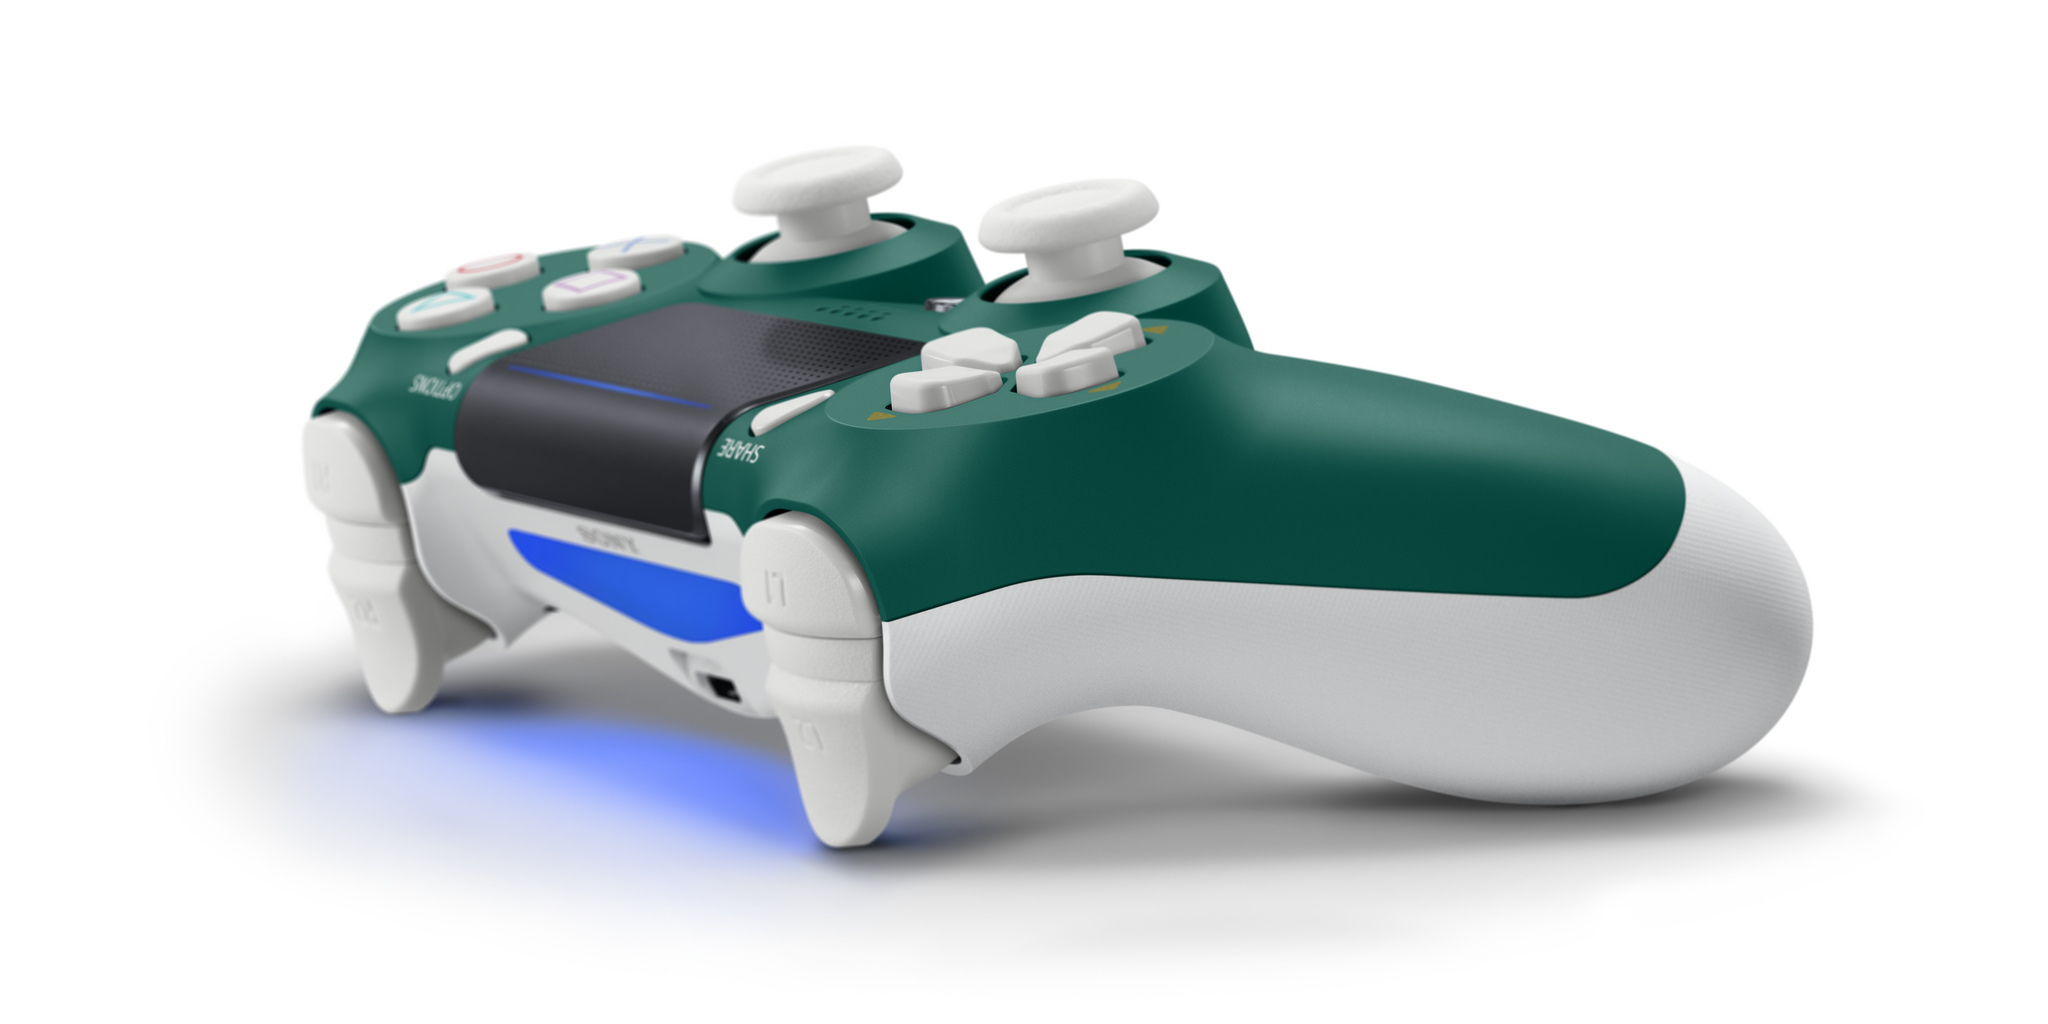 The new Alpine Green PS4 controller is the latest addition to Sony's DualShock 4 lineup